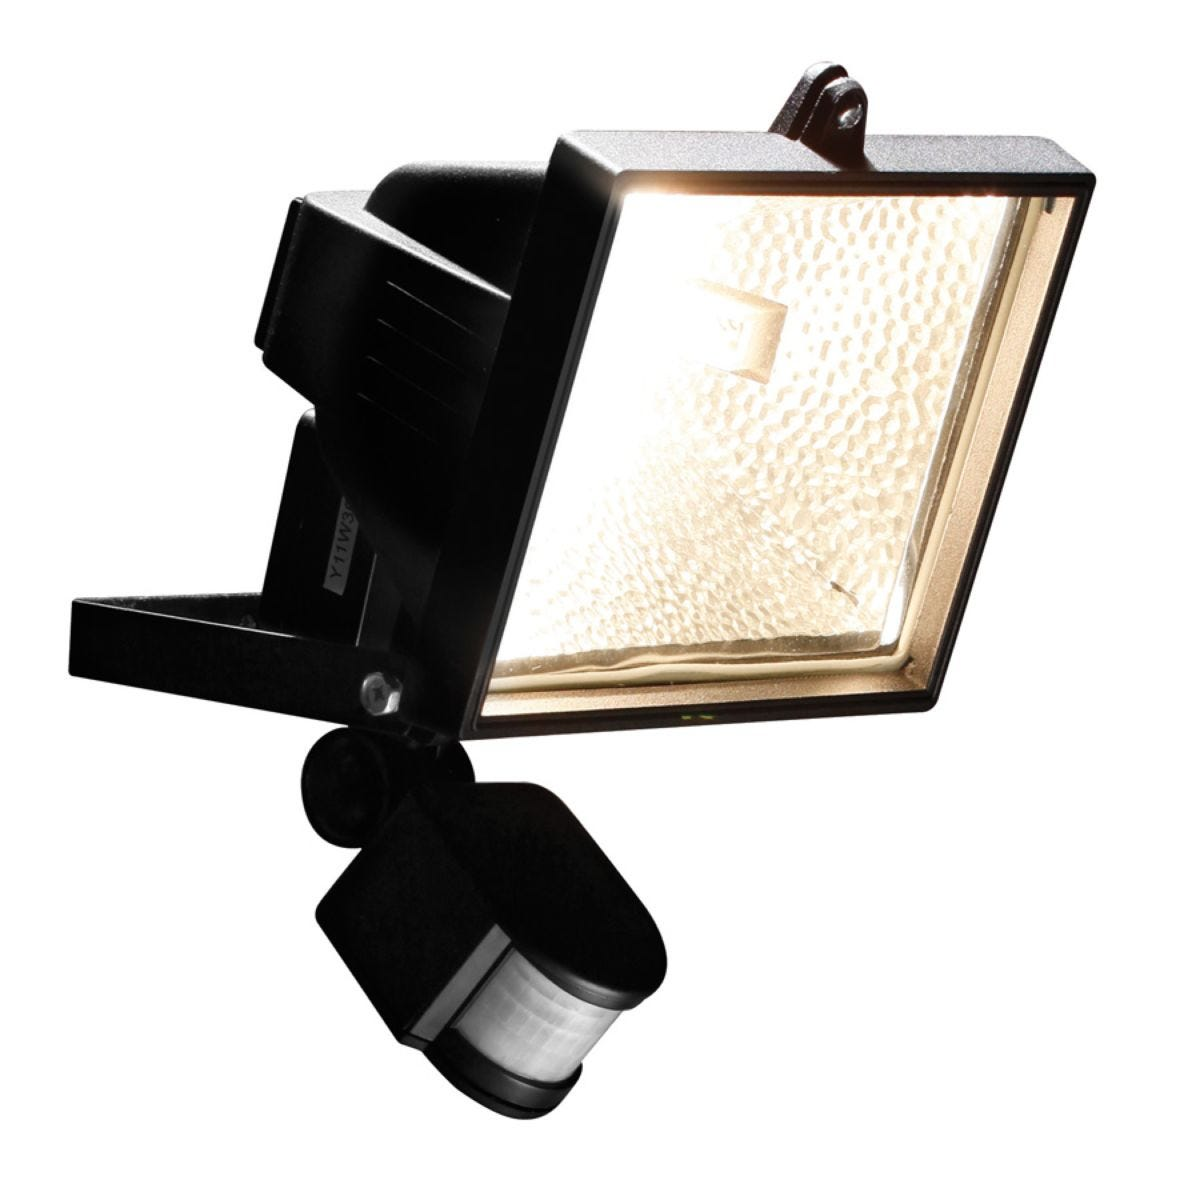 Status Rimini PIR Halogen Floodlight